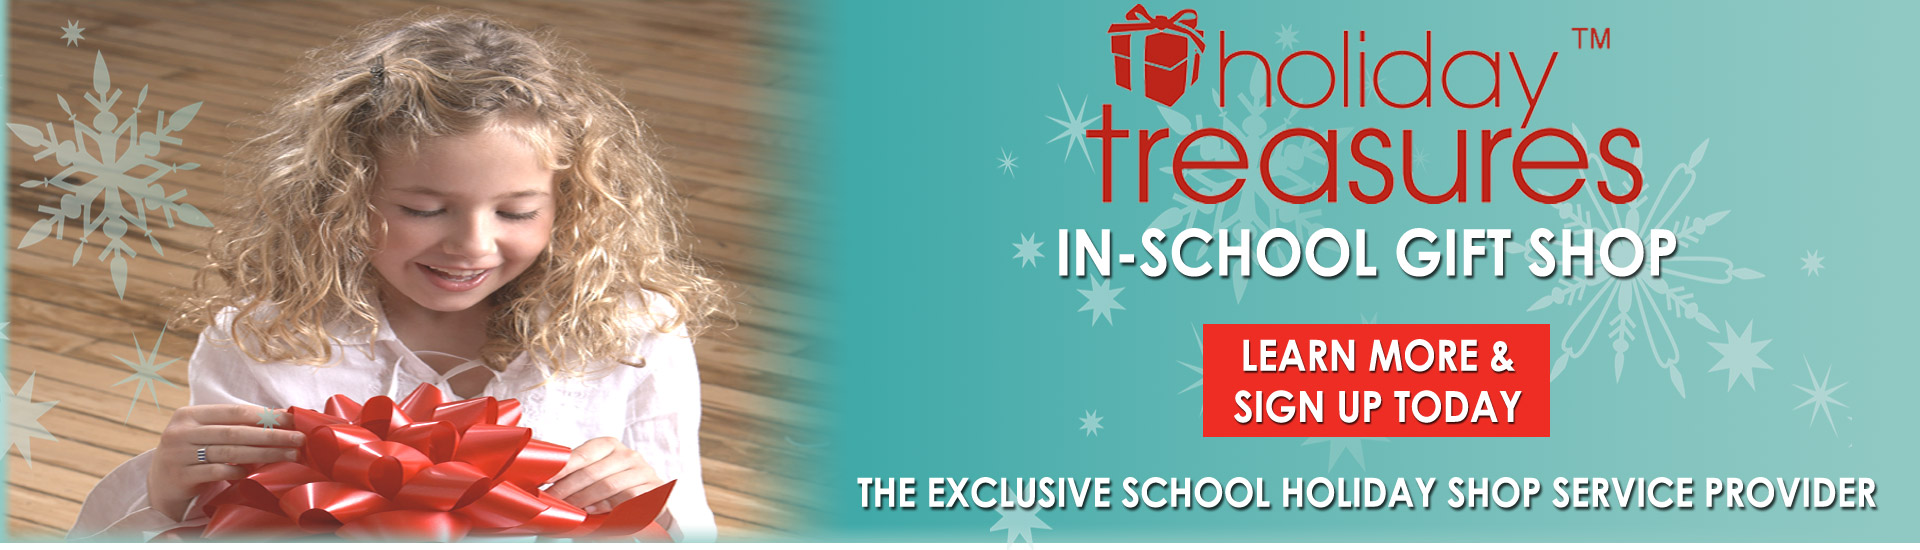 Holiday Treasures Gift Shop - School Holiday Shop